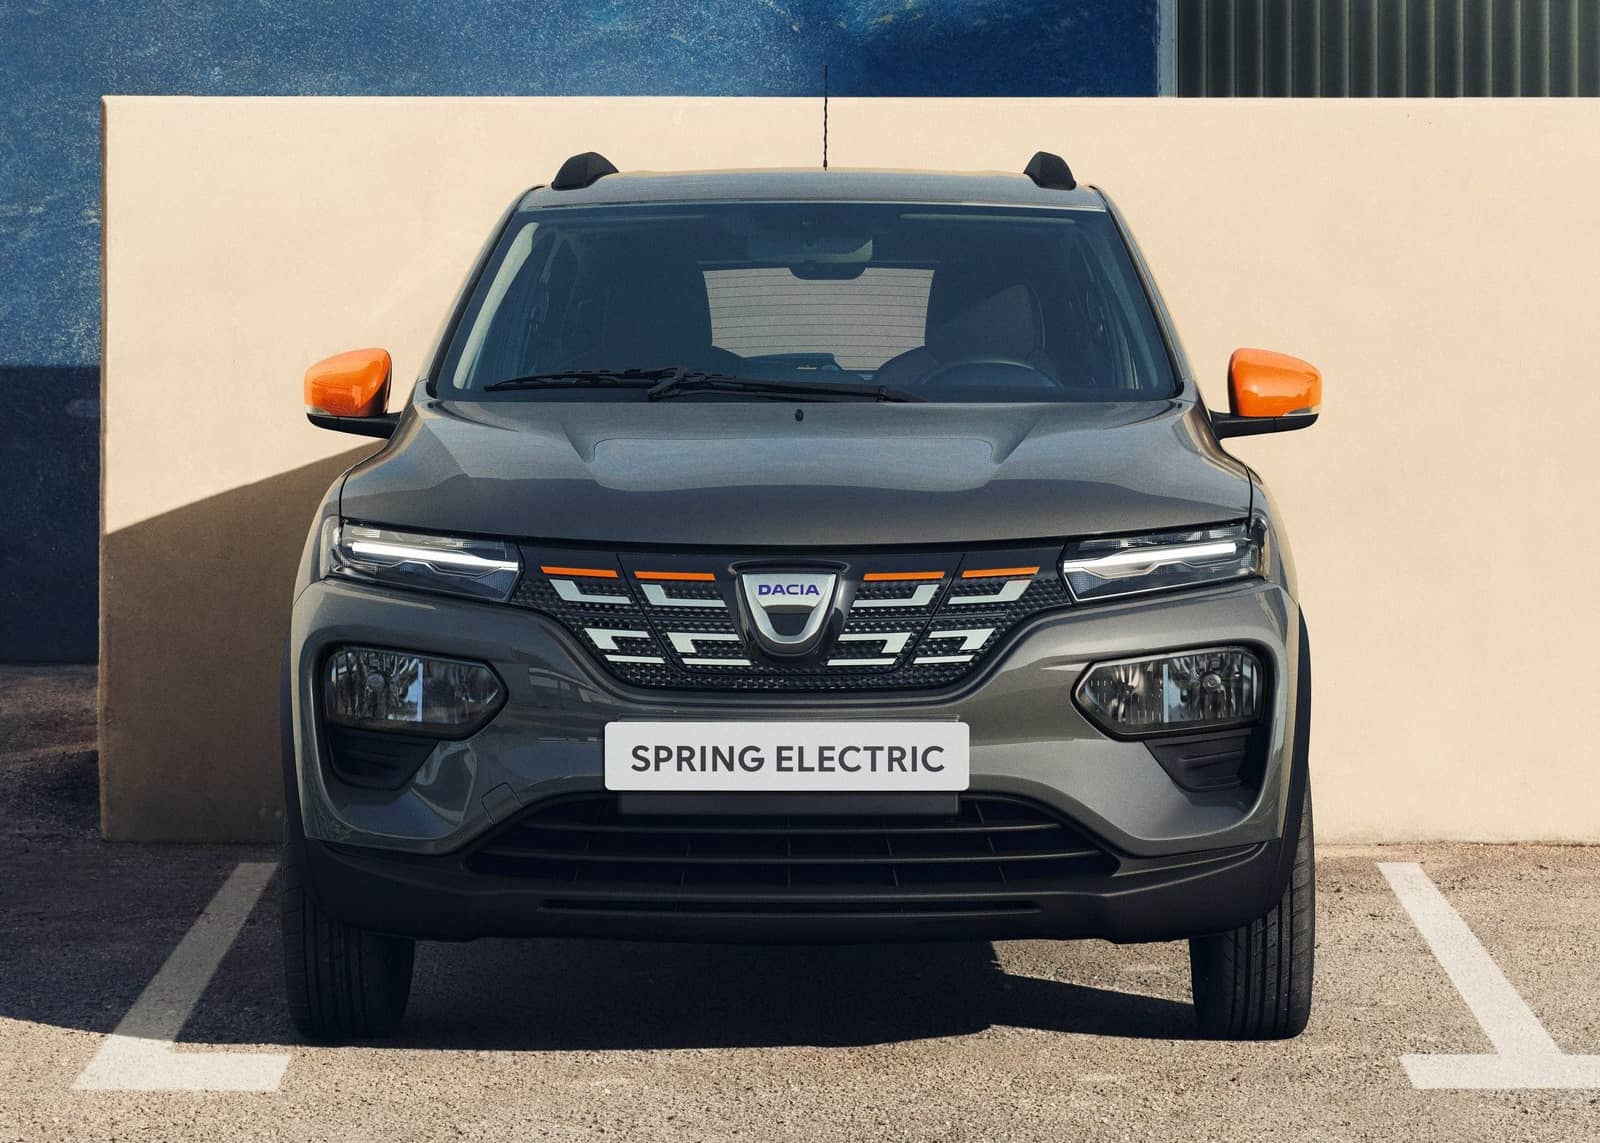 Dacia-Spring_Electric-2022-1600-07